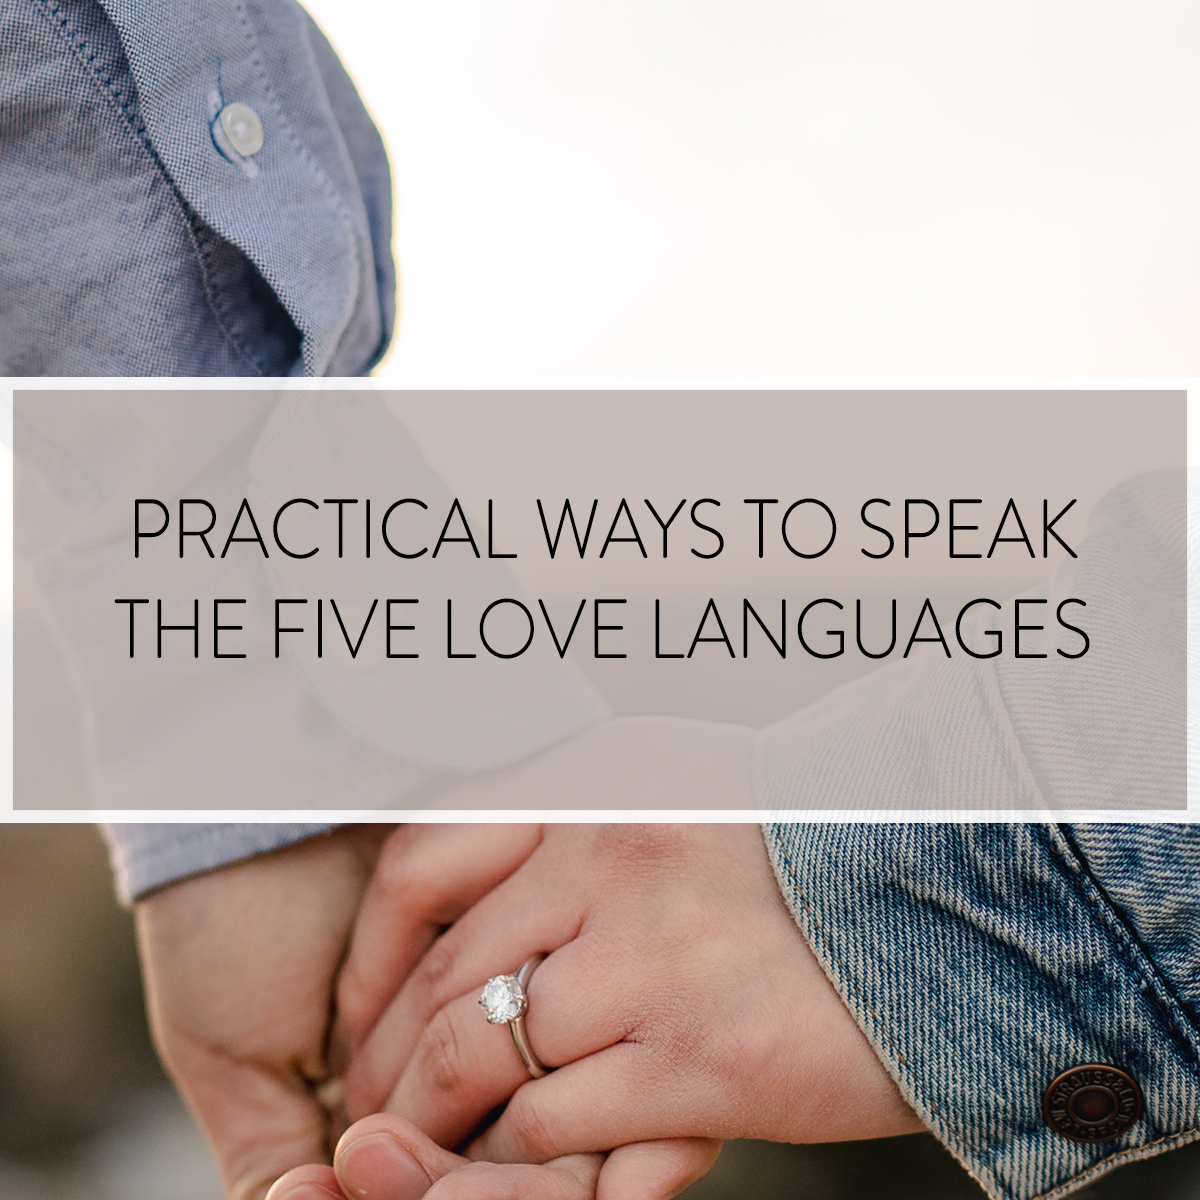 Want to know some fun and practical ways to speak the Five Love Languages to your spouse? Look no further with this comprehensive post PLUS a free ebook!